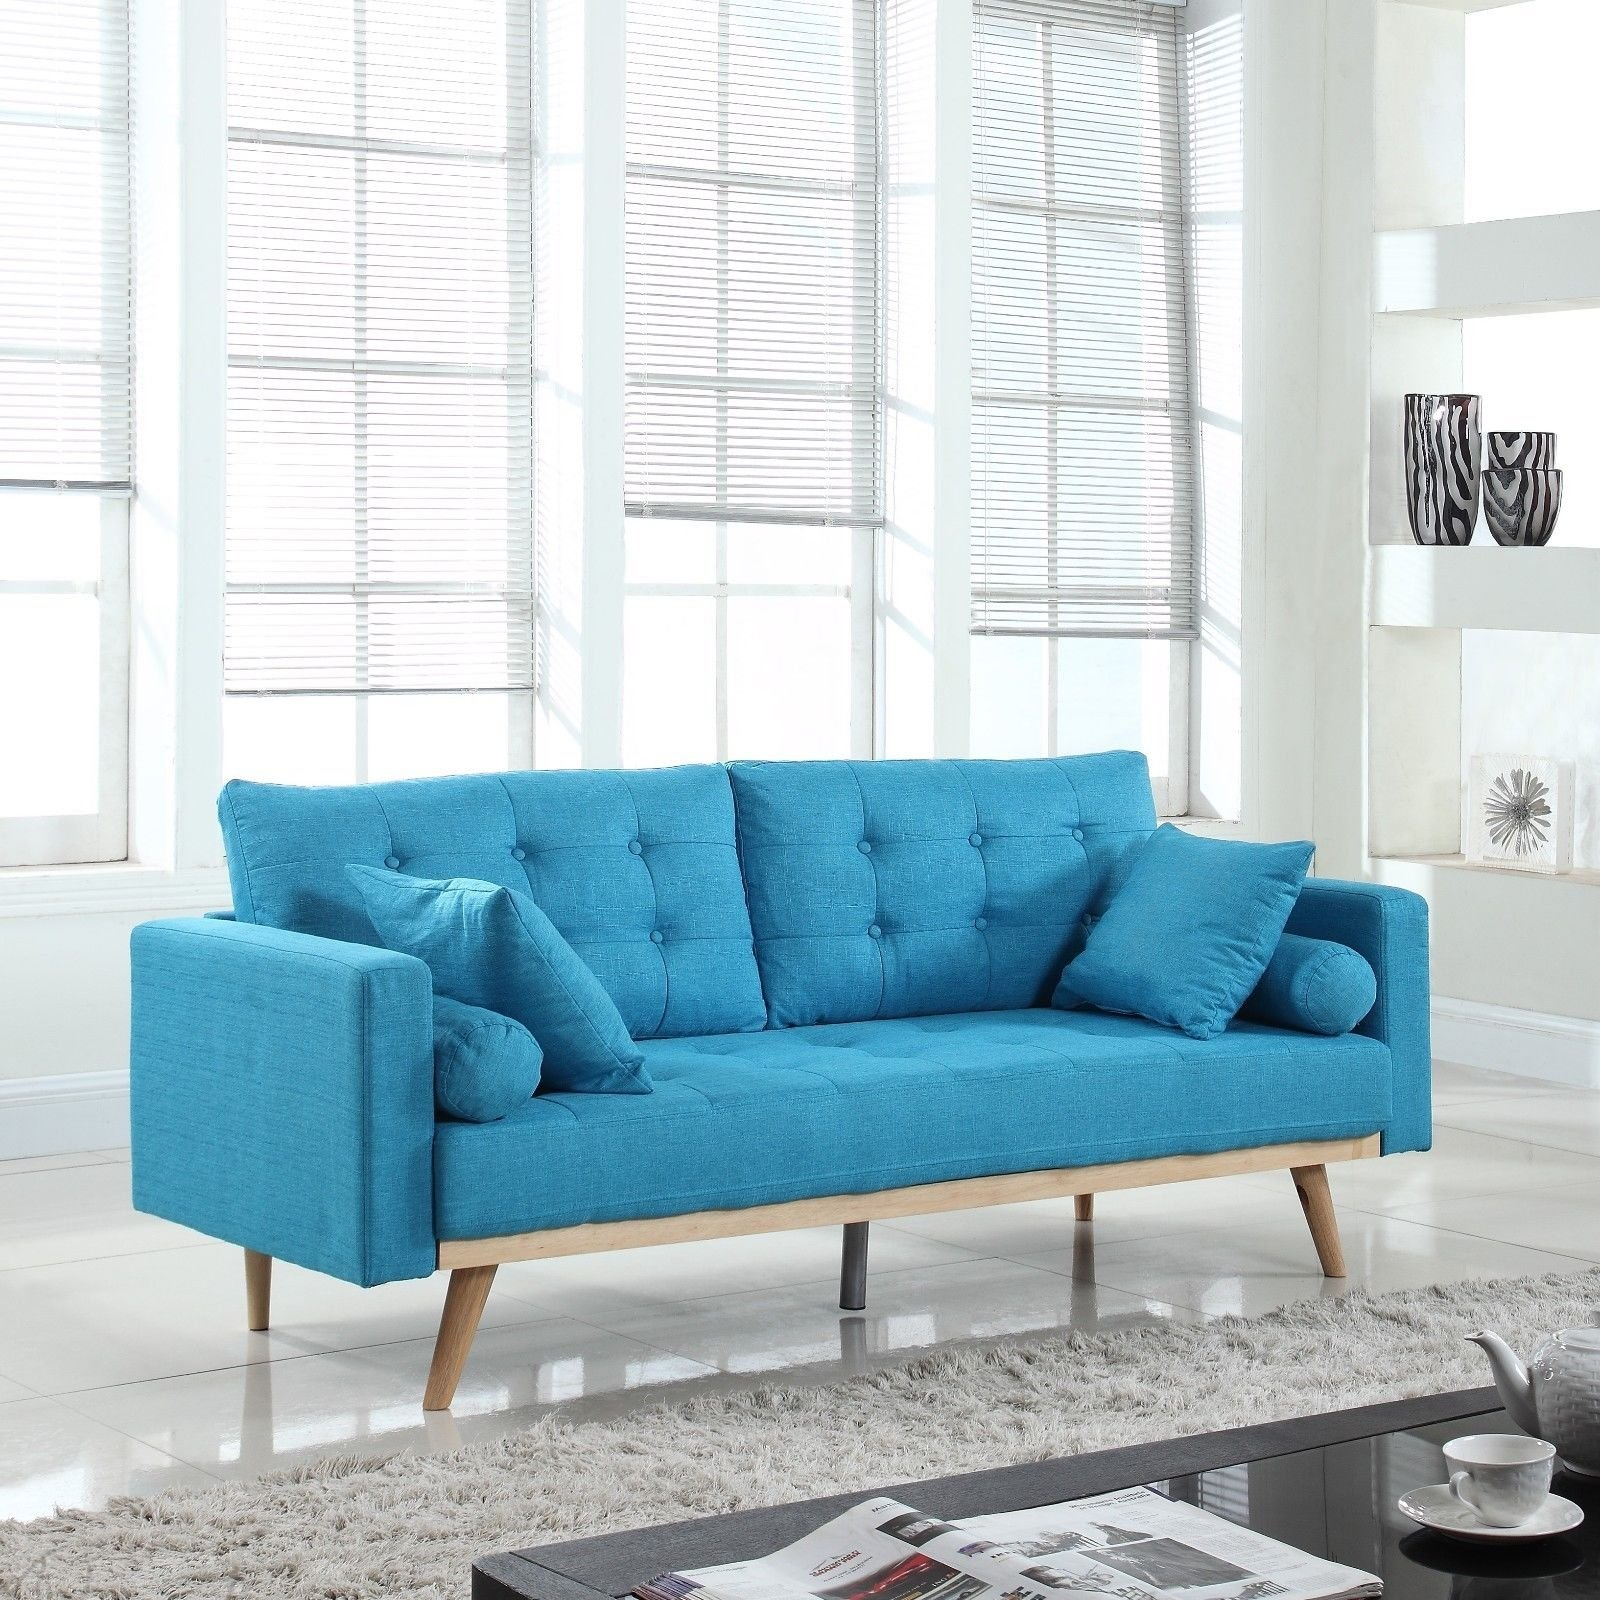 Miraculous Details About Mid Century Modern Tufted Linen Fabric Sofa In Light Blue Pabps2019 Chair Design Images Pabps2019Com